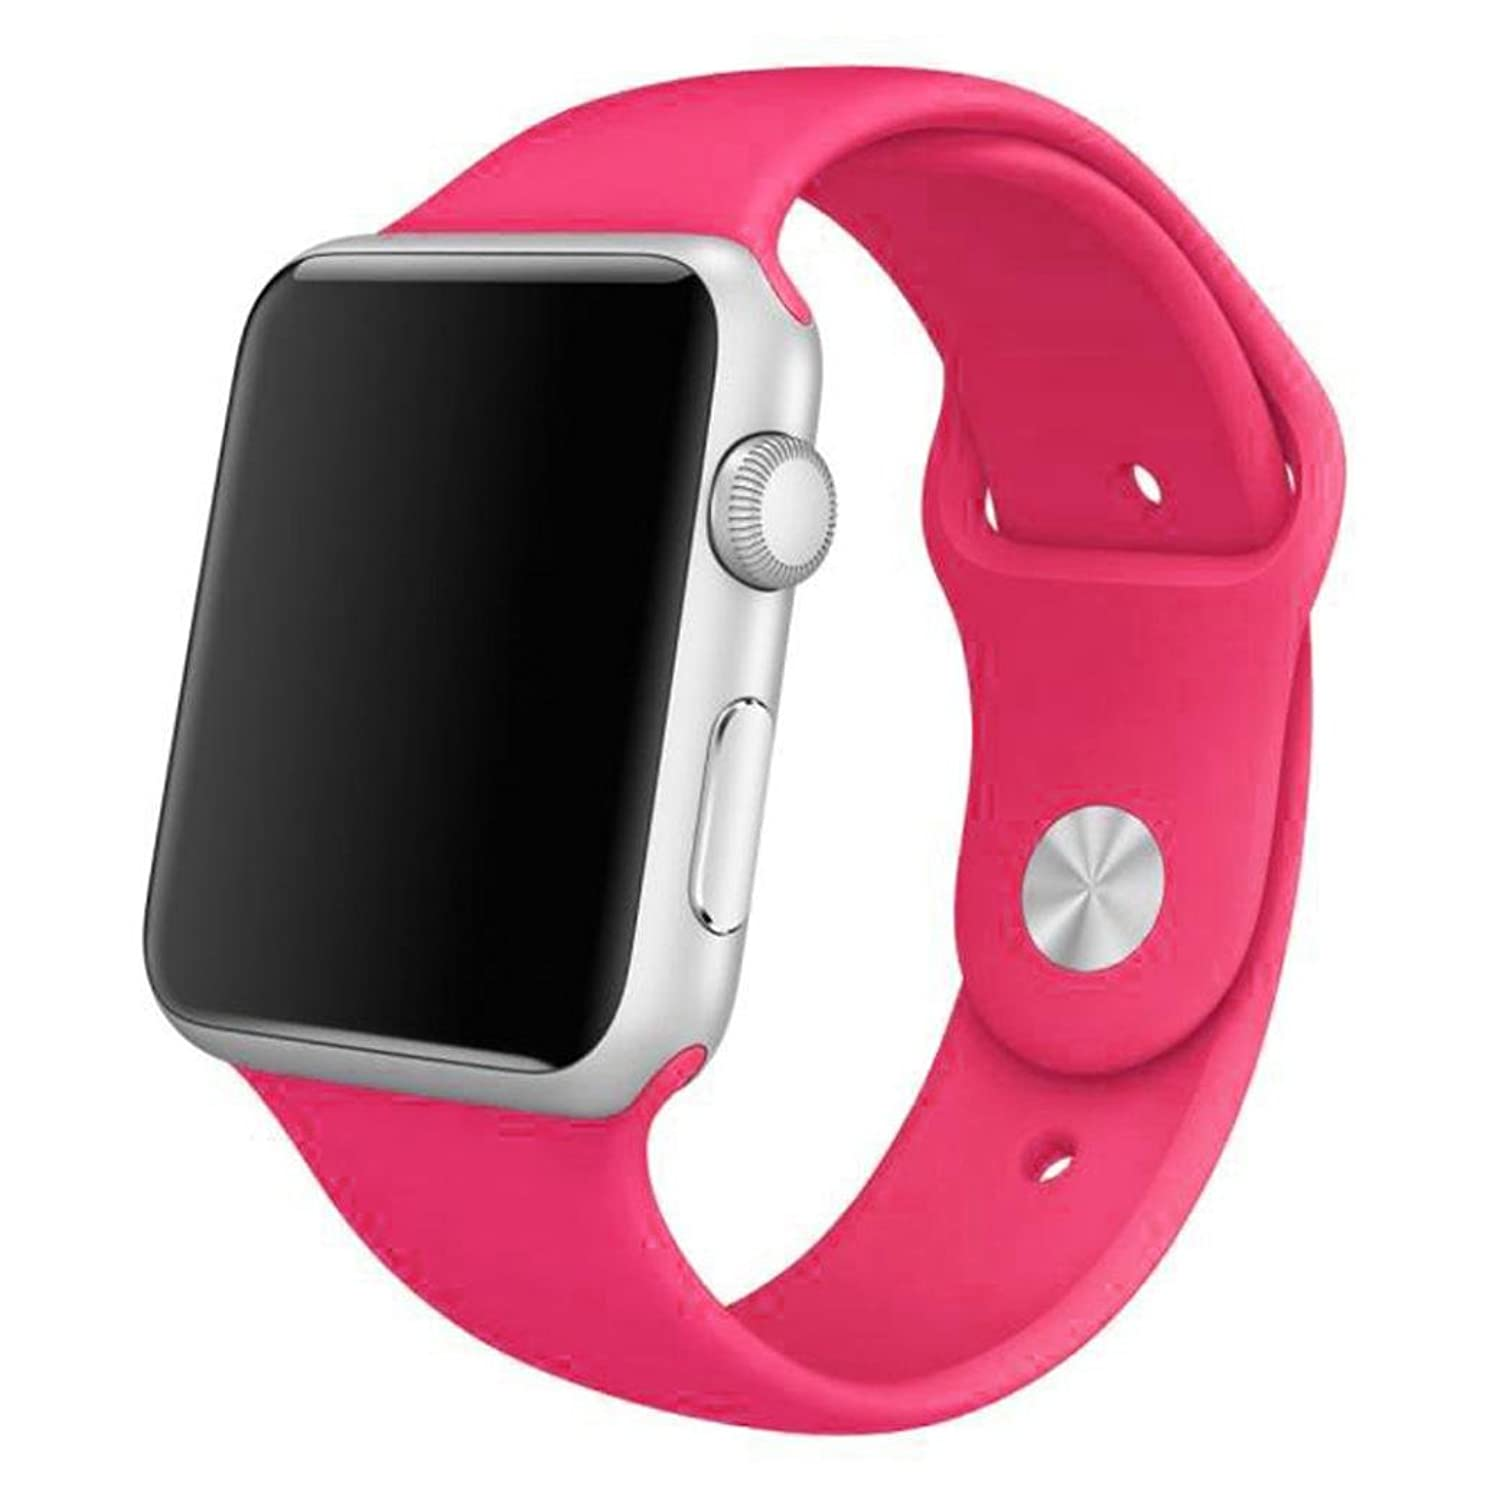 GBSELL New Sports Silicone Bracelet Strap Band For Apple Watch 38mm Hot Pink